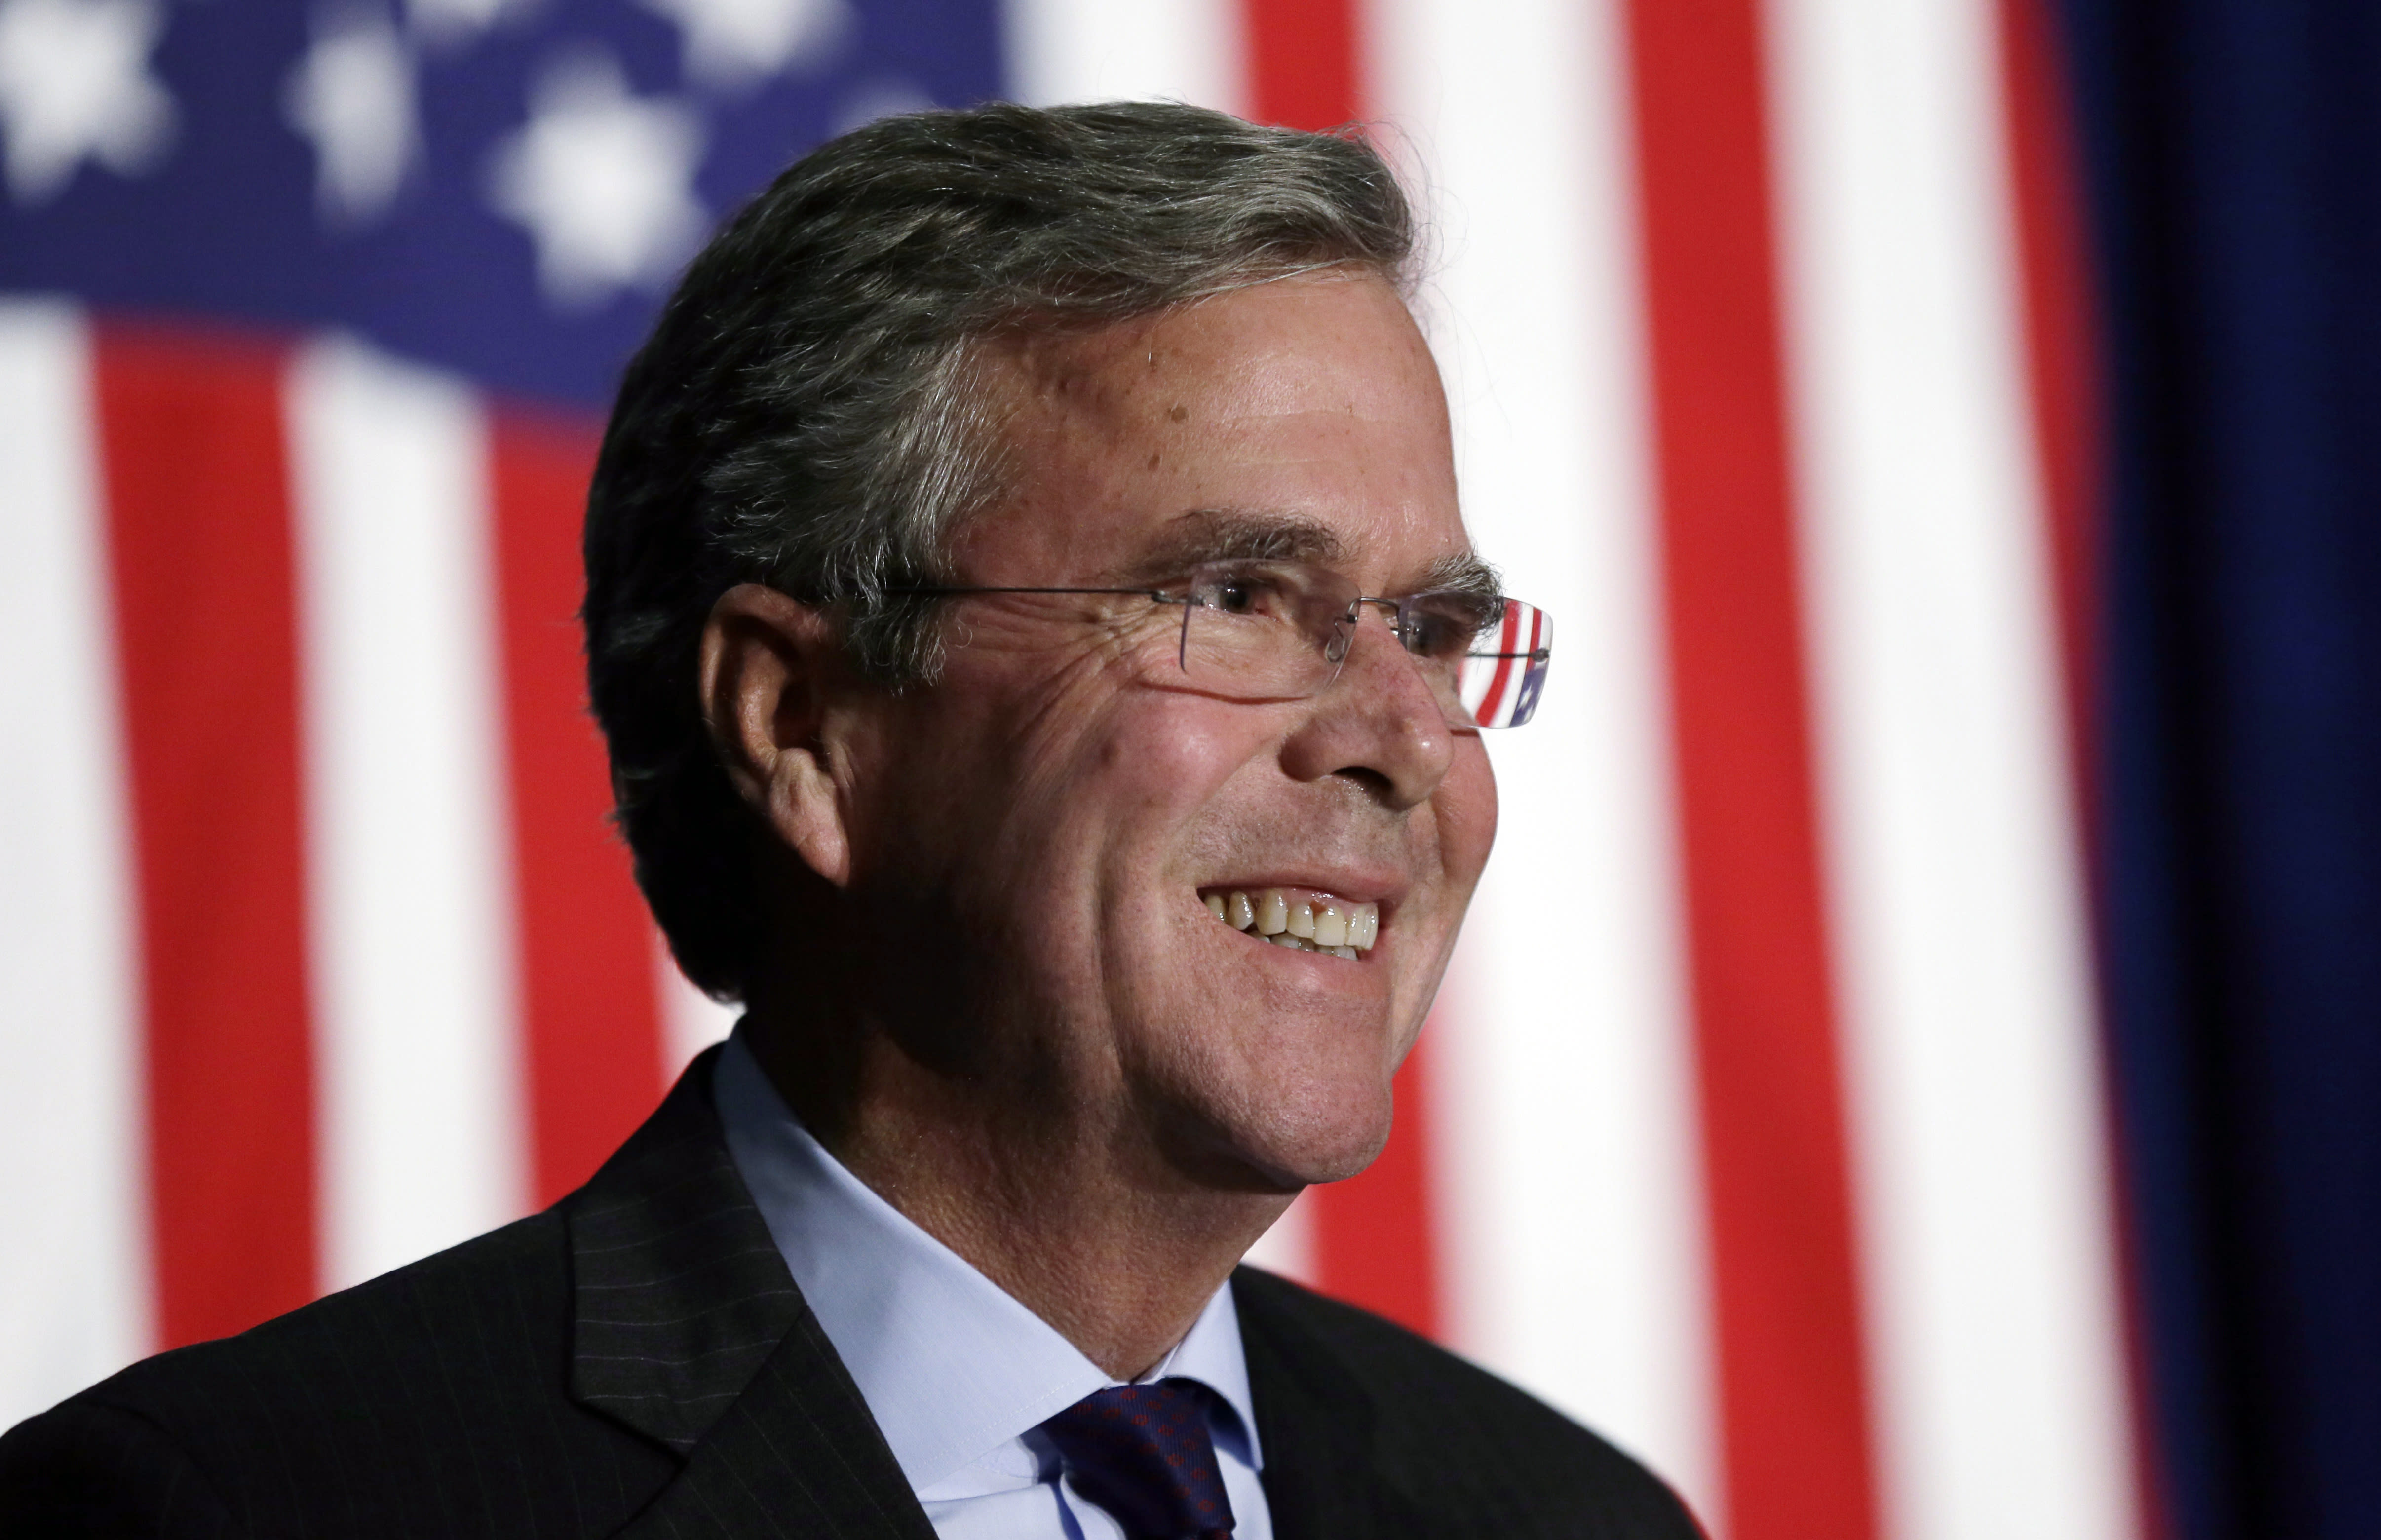 Bush offers plan to repeal, replace federal health care law